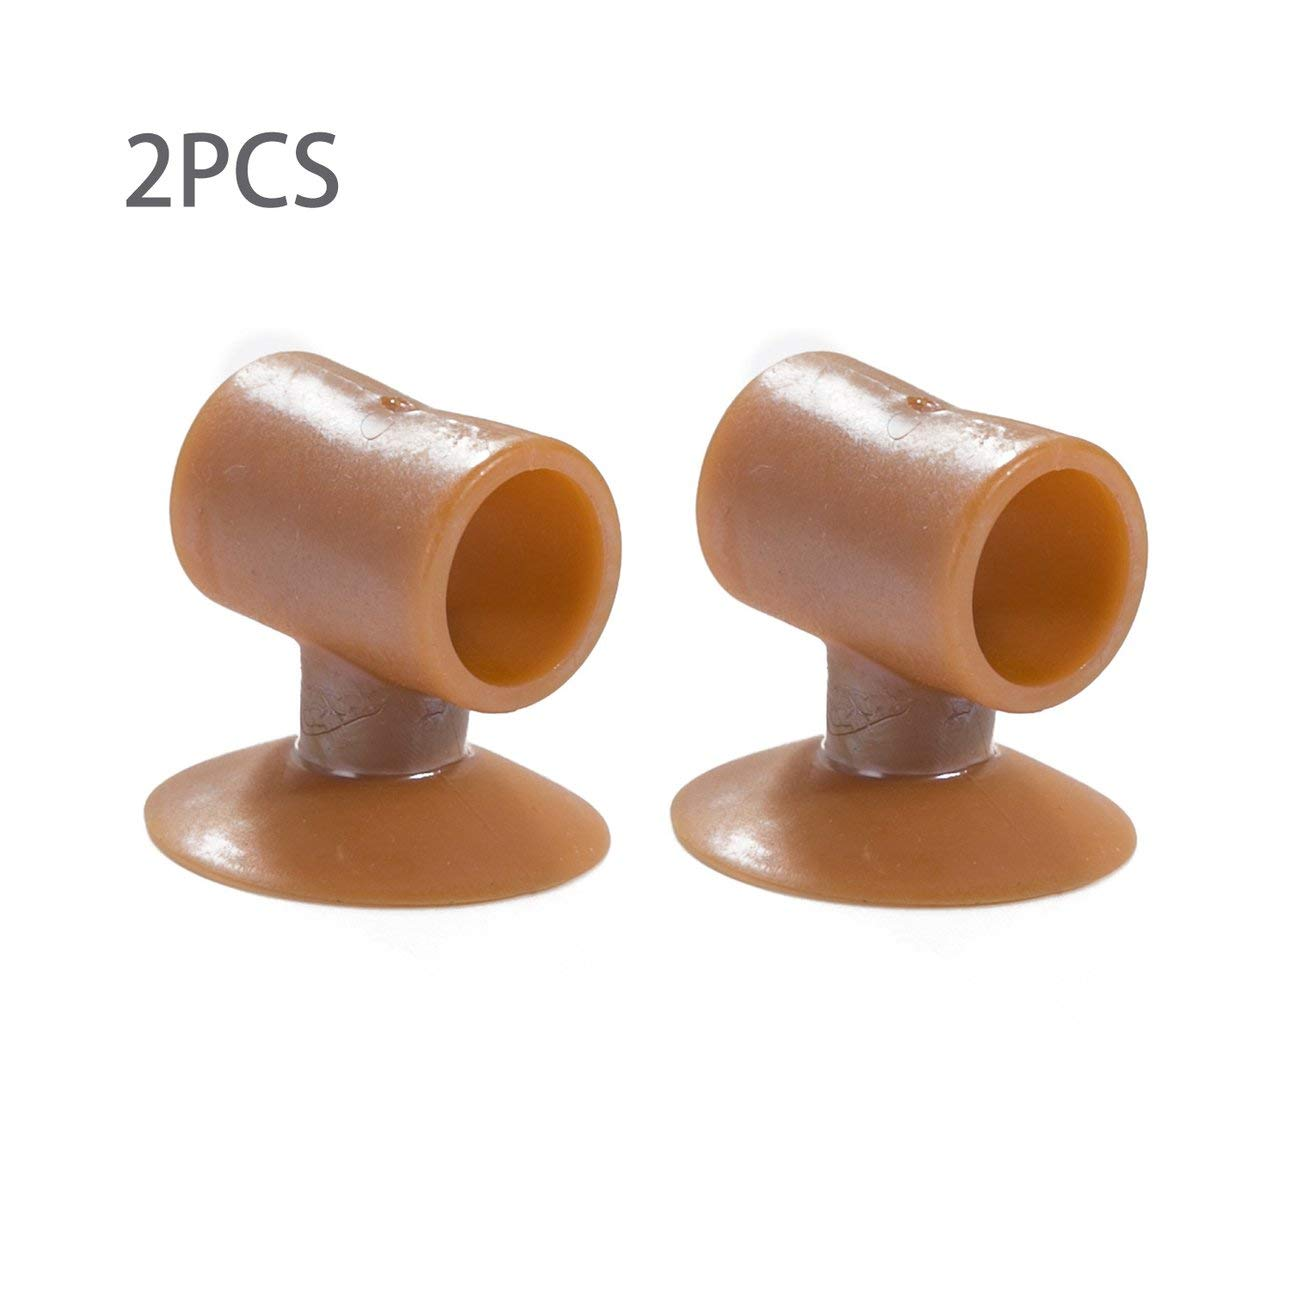 Liobaba Silent Door Wall Protector Anti-collision Pad,2PCS Soft Silicone Anti-Collision Door Protective Pads Suction Cup Type Cabinet Door Handle Lock Silencer Fender